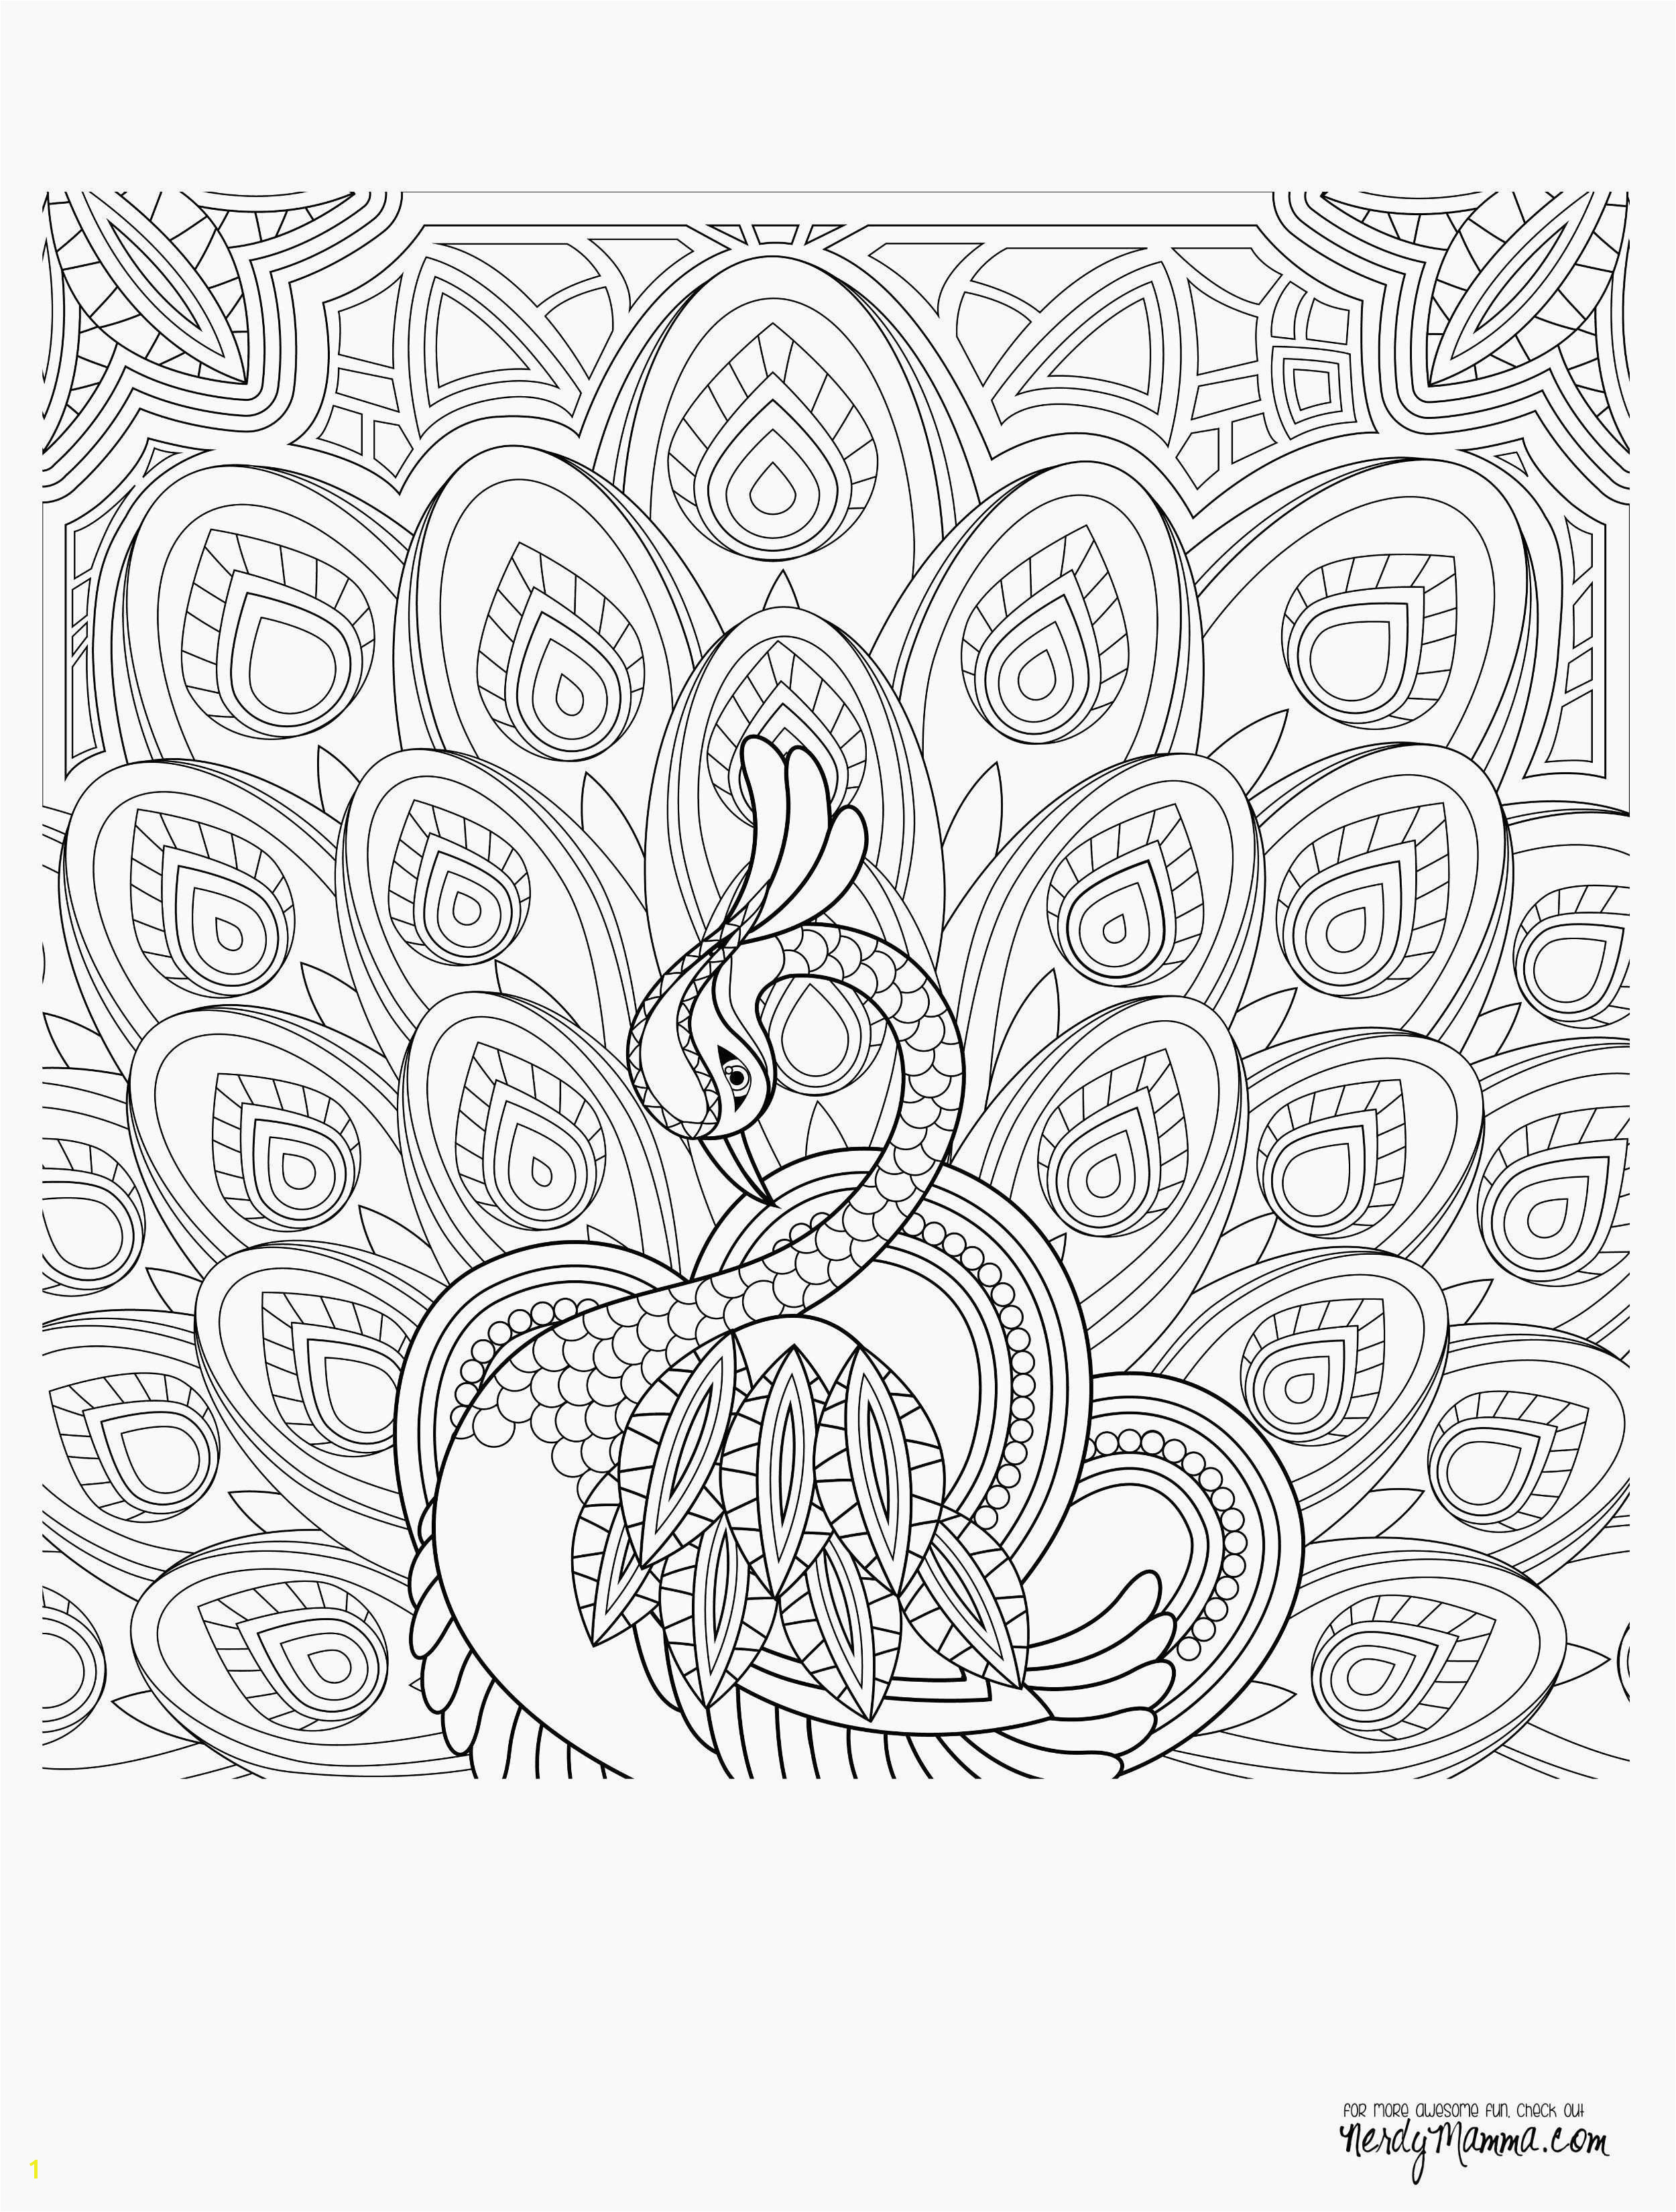 Heart With Ribbon Printable Coloring Pages Free Doodle New Page For Adult Od Kids Awesome